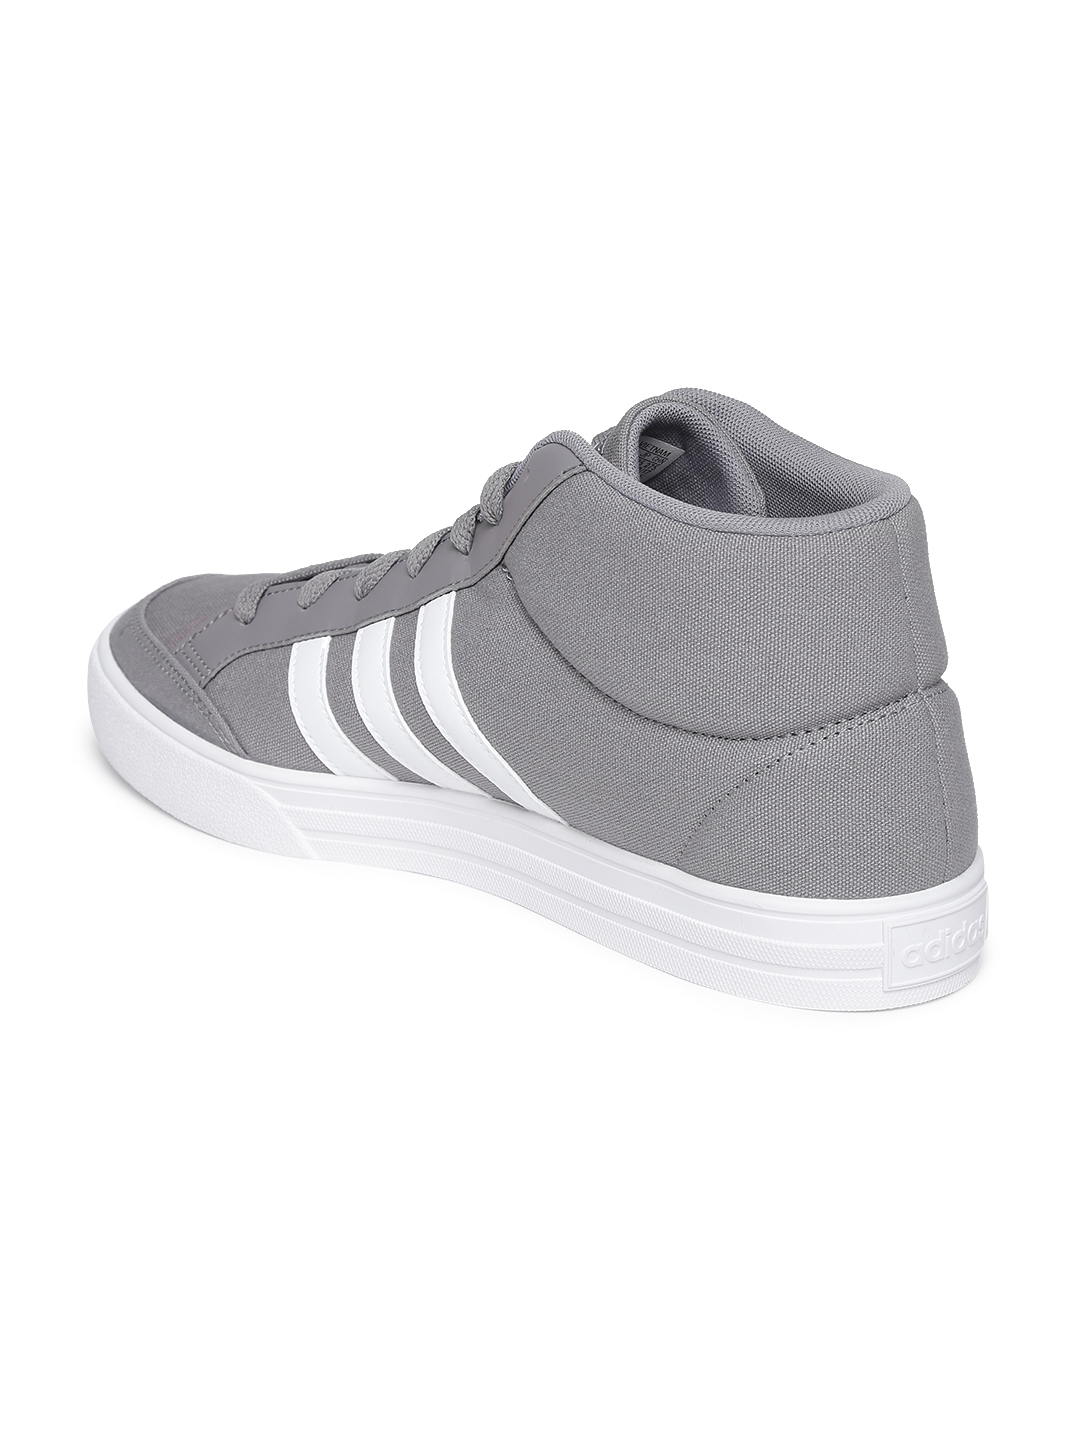 ADIDAS NEO VS SET MID Tennis Shoes For Men